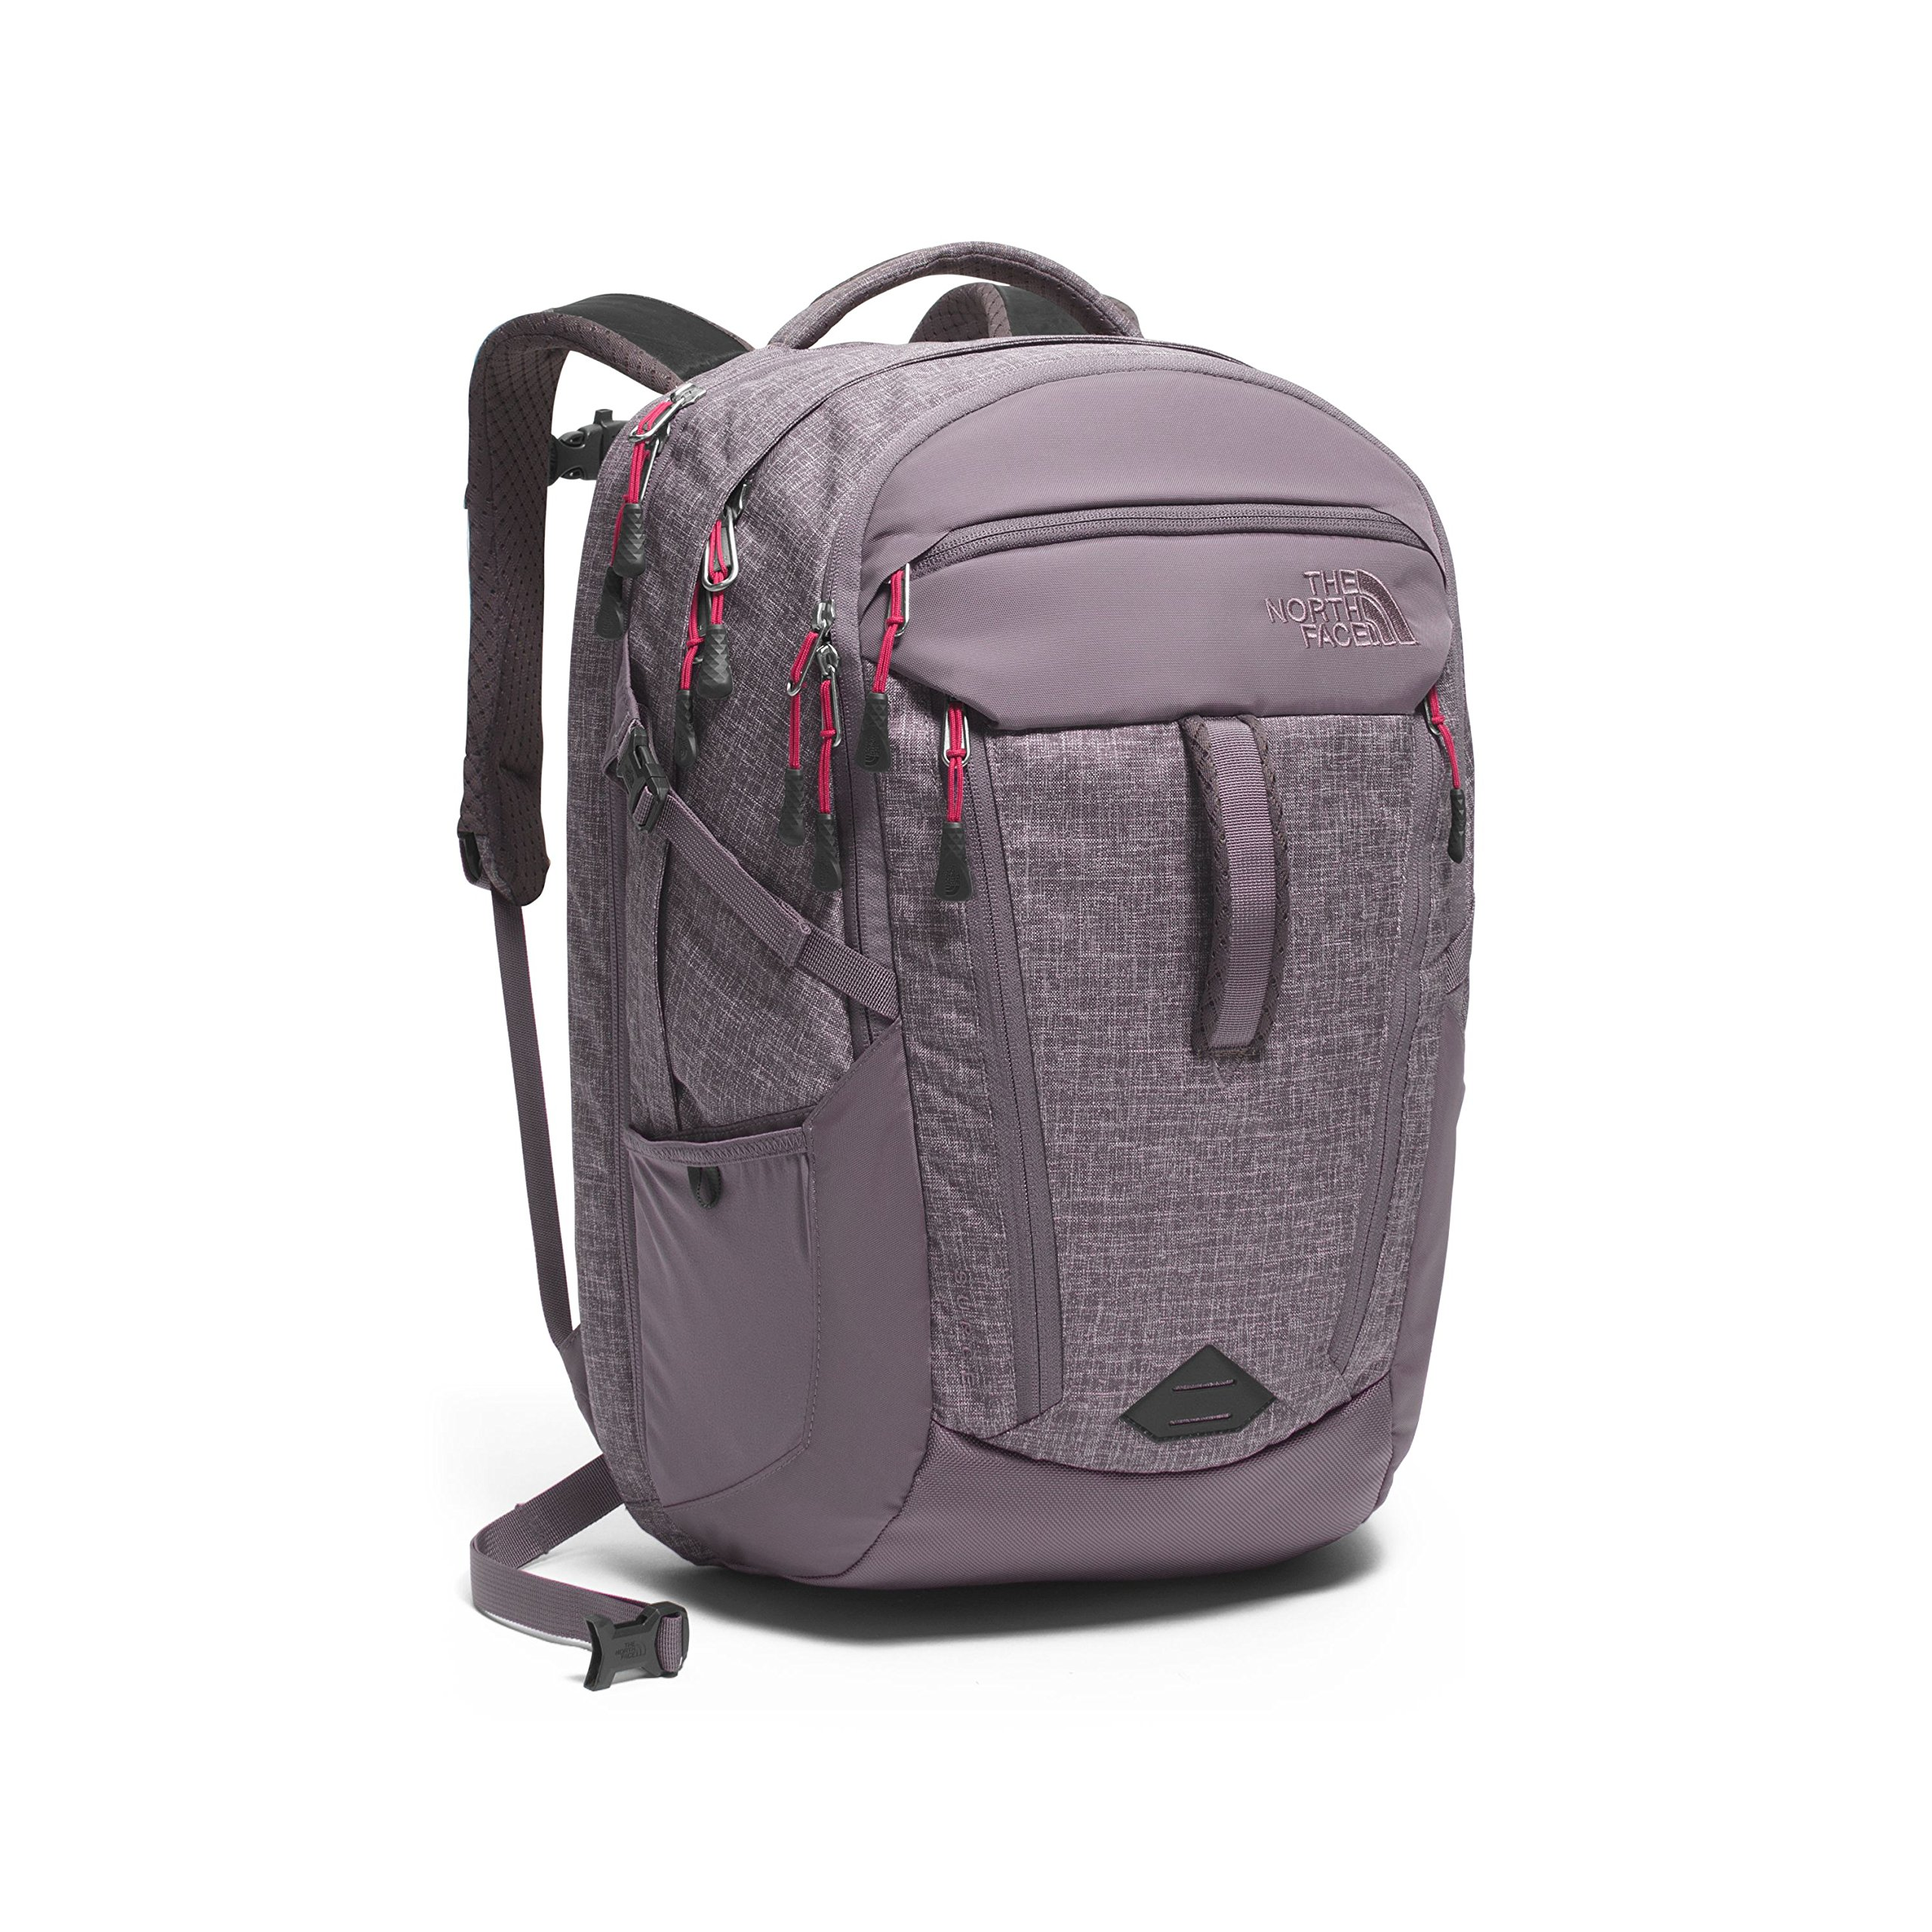 The North Face Women's Surge Laptop Backpack - 15'' (Rabbit Grey Heather/Cerise